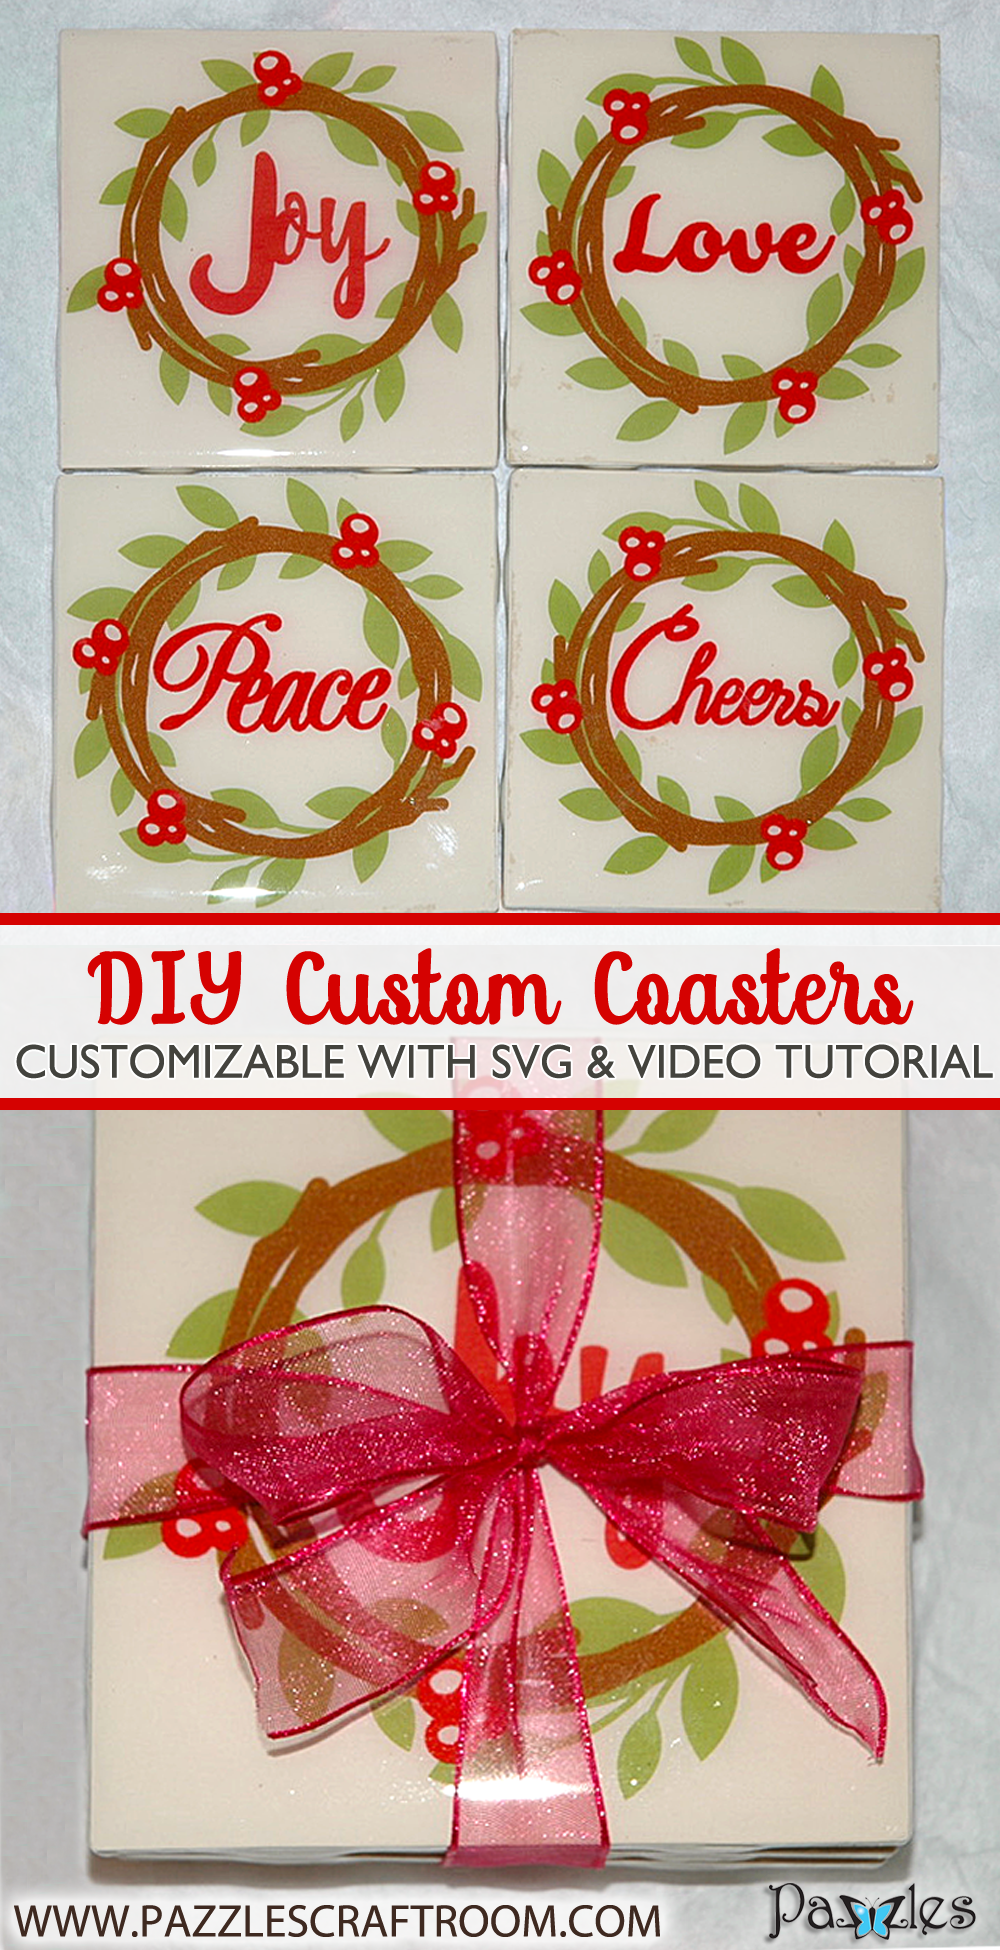 Pazzles DIY Custom Coasters with SVG download compatible with all major electronic cutters including Pazzles Inspiration, Cricut, and Silhouette Cameo. By Judy Hanson.